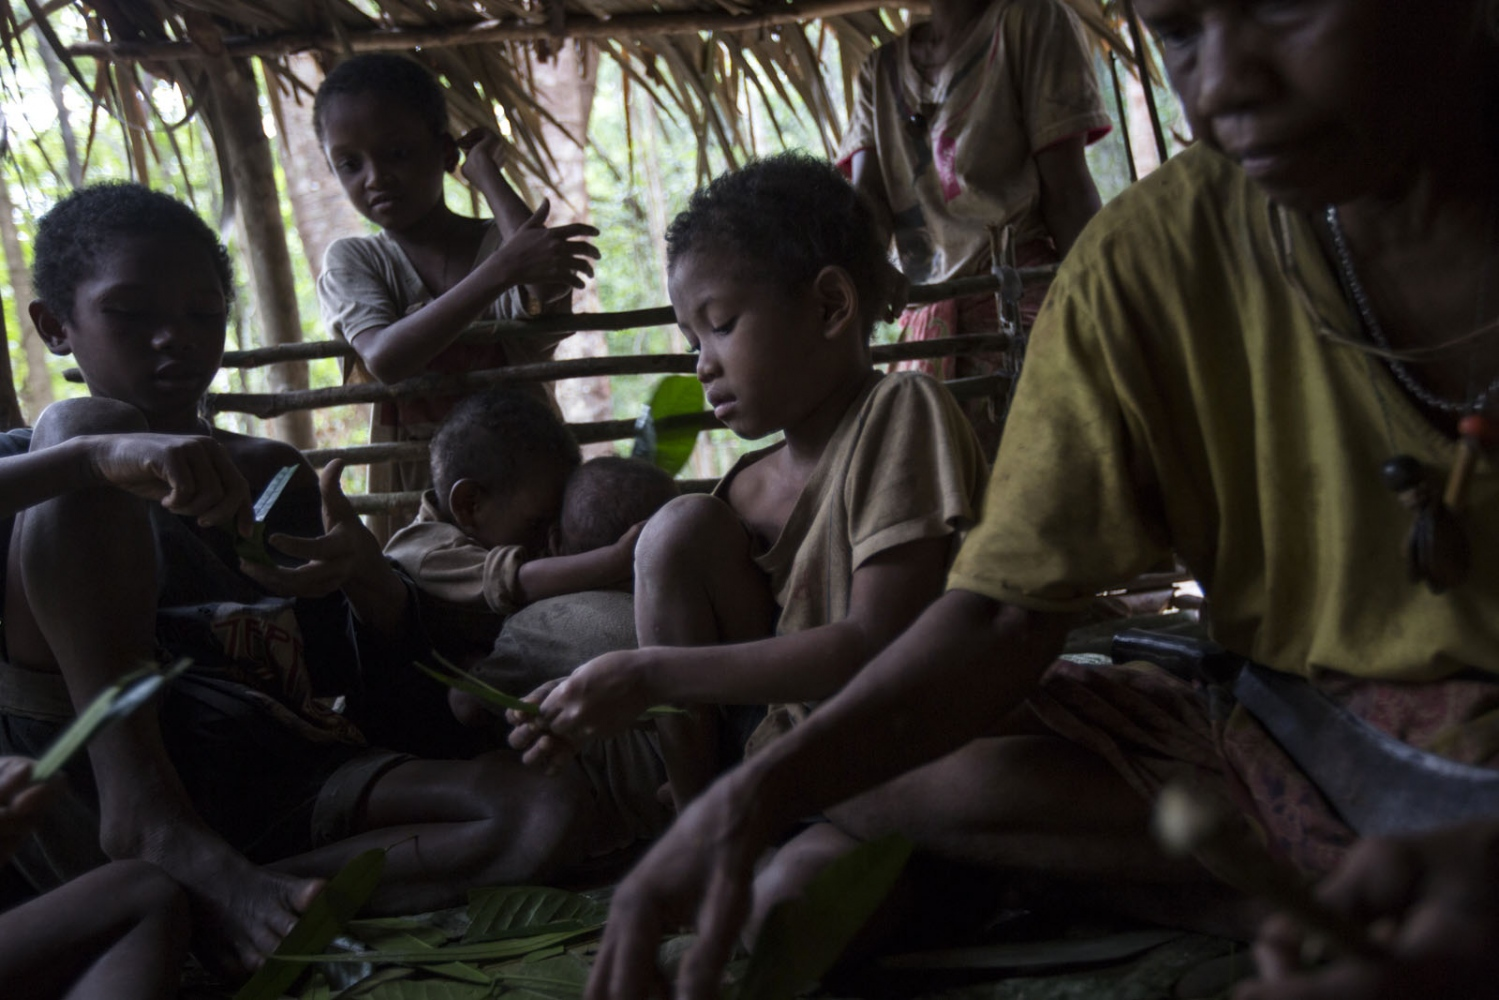 Children and the elderly sit inside one of the shelters preparing leaves which are natural herbal remedies to different illnesses. Satun - September 2016